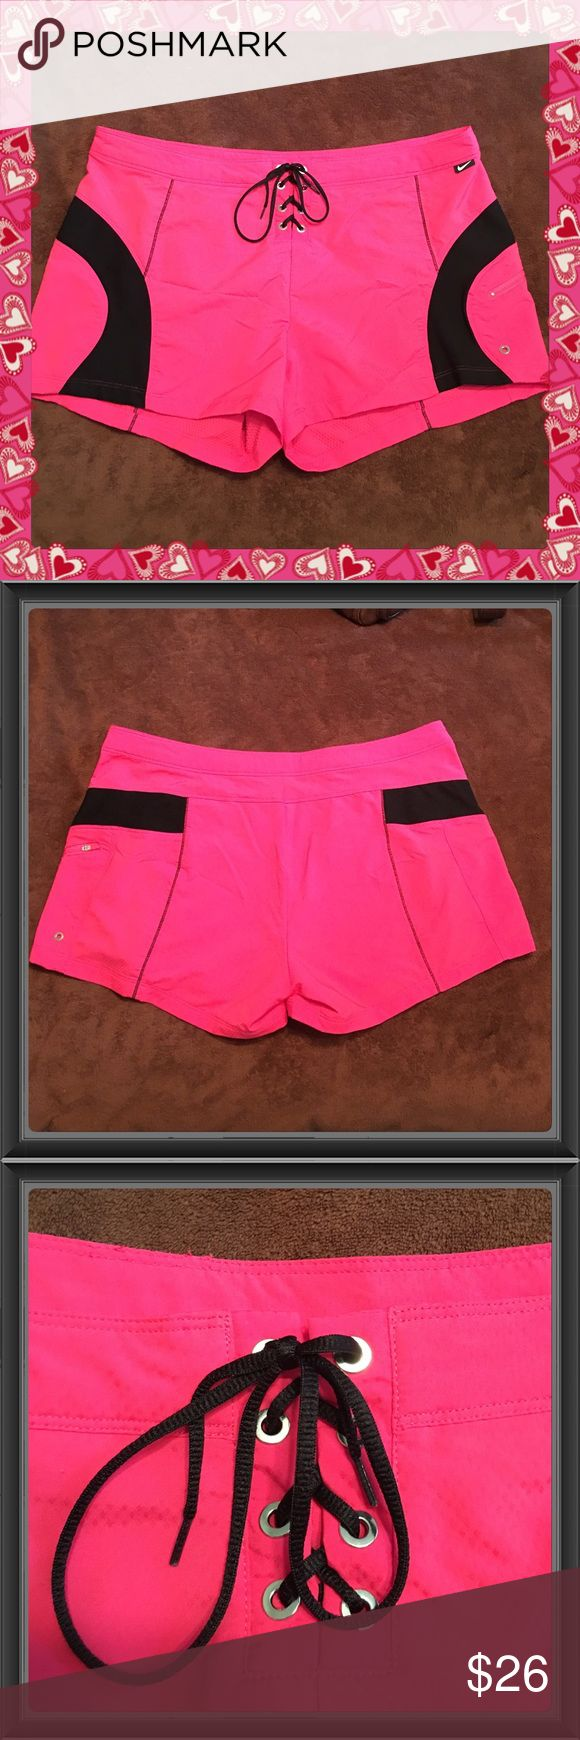 """Re-Posh New Never Worn NIKE SPHERE DRY Shorts XL Really pretty NIKE SPHERE DRY Swimsuit Cover Up shorts, New/Never worn by either party. XL (16-18) Dark Pink with Black inserts, zip up pocket & metal eyelets. Measures 19.75""""across the waist laying flat w/a 3"""" Inseam. These are super nice but I never wore them, was planning on it this summer but lost 40lbs & now they are way too big on me, I'm in a SZ 8-10 now. Pic added showing what I paid & being I never wore them either & they run anywhere…"""